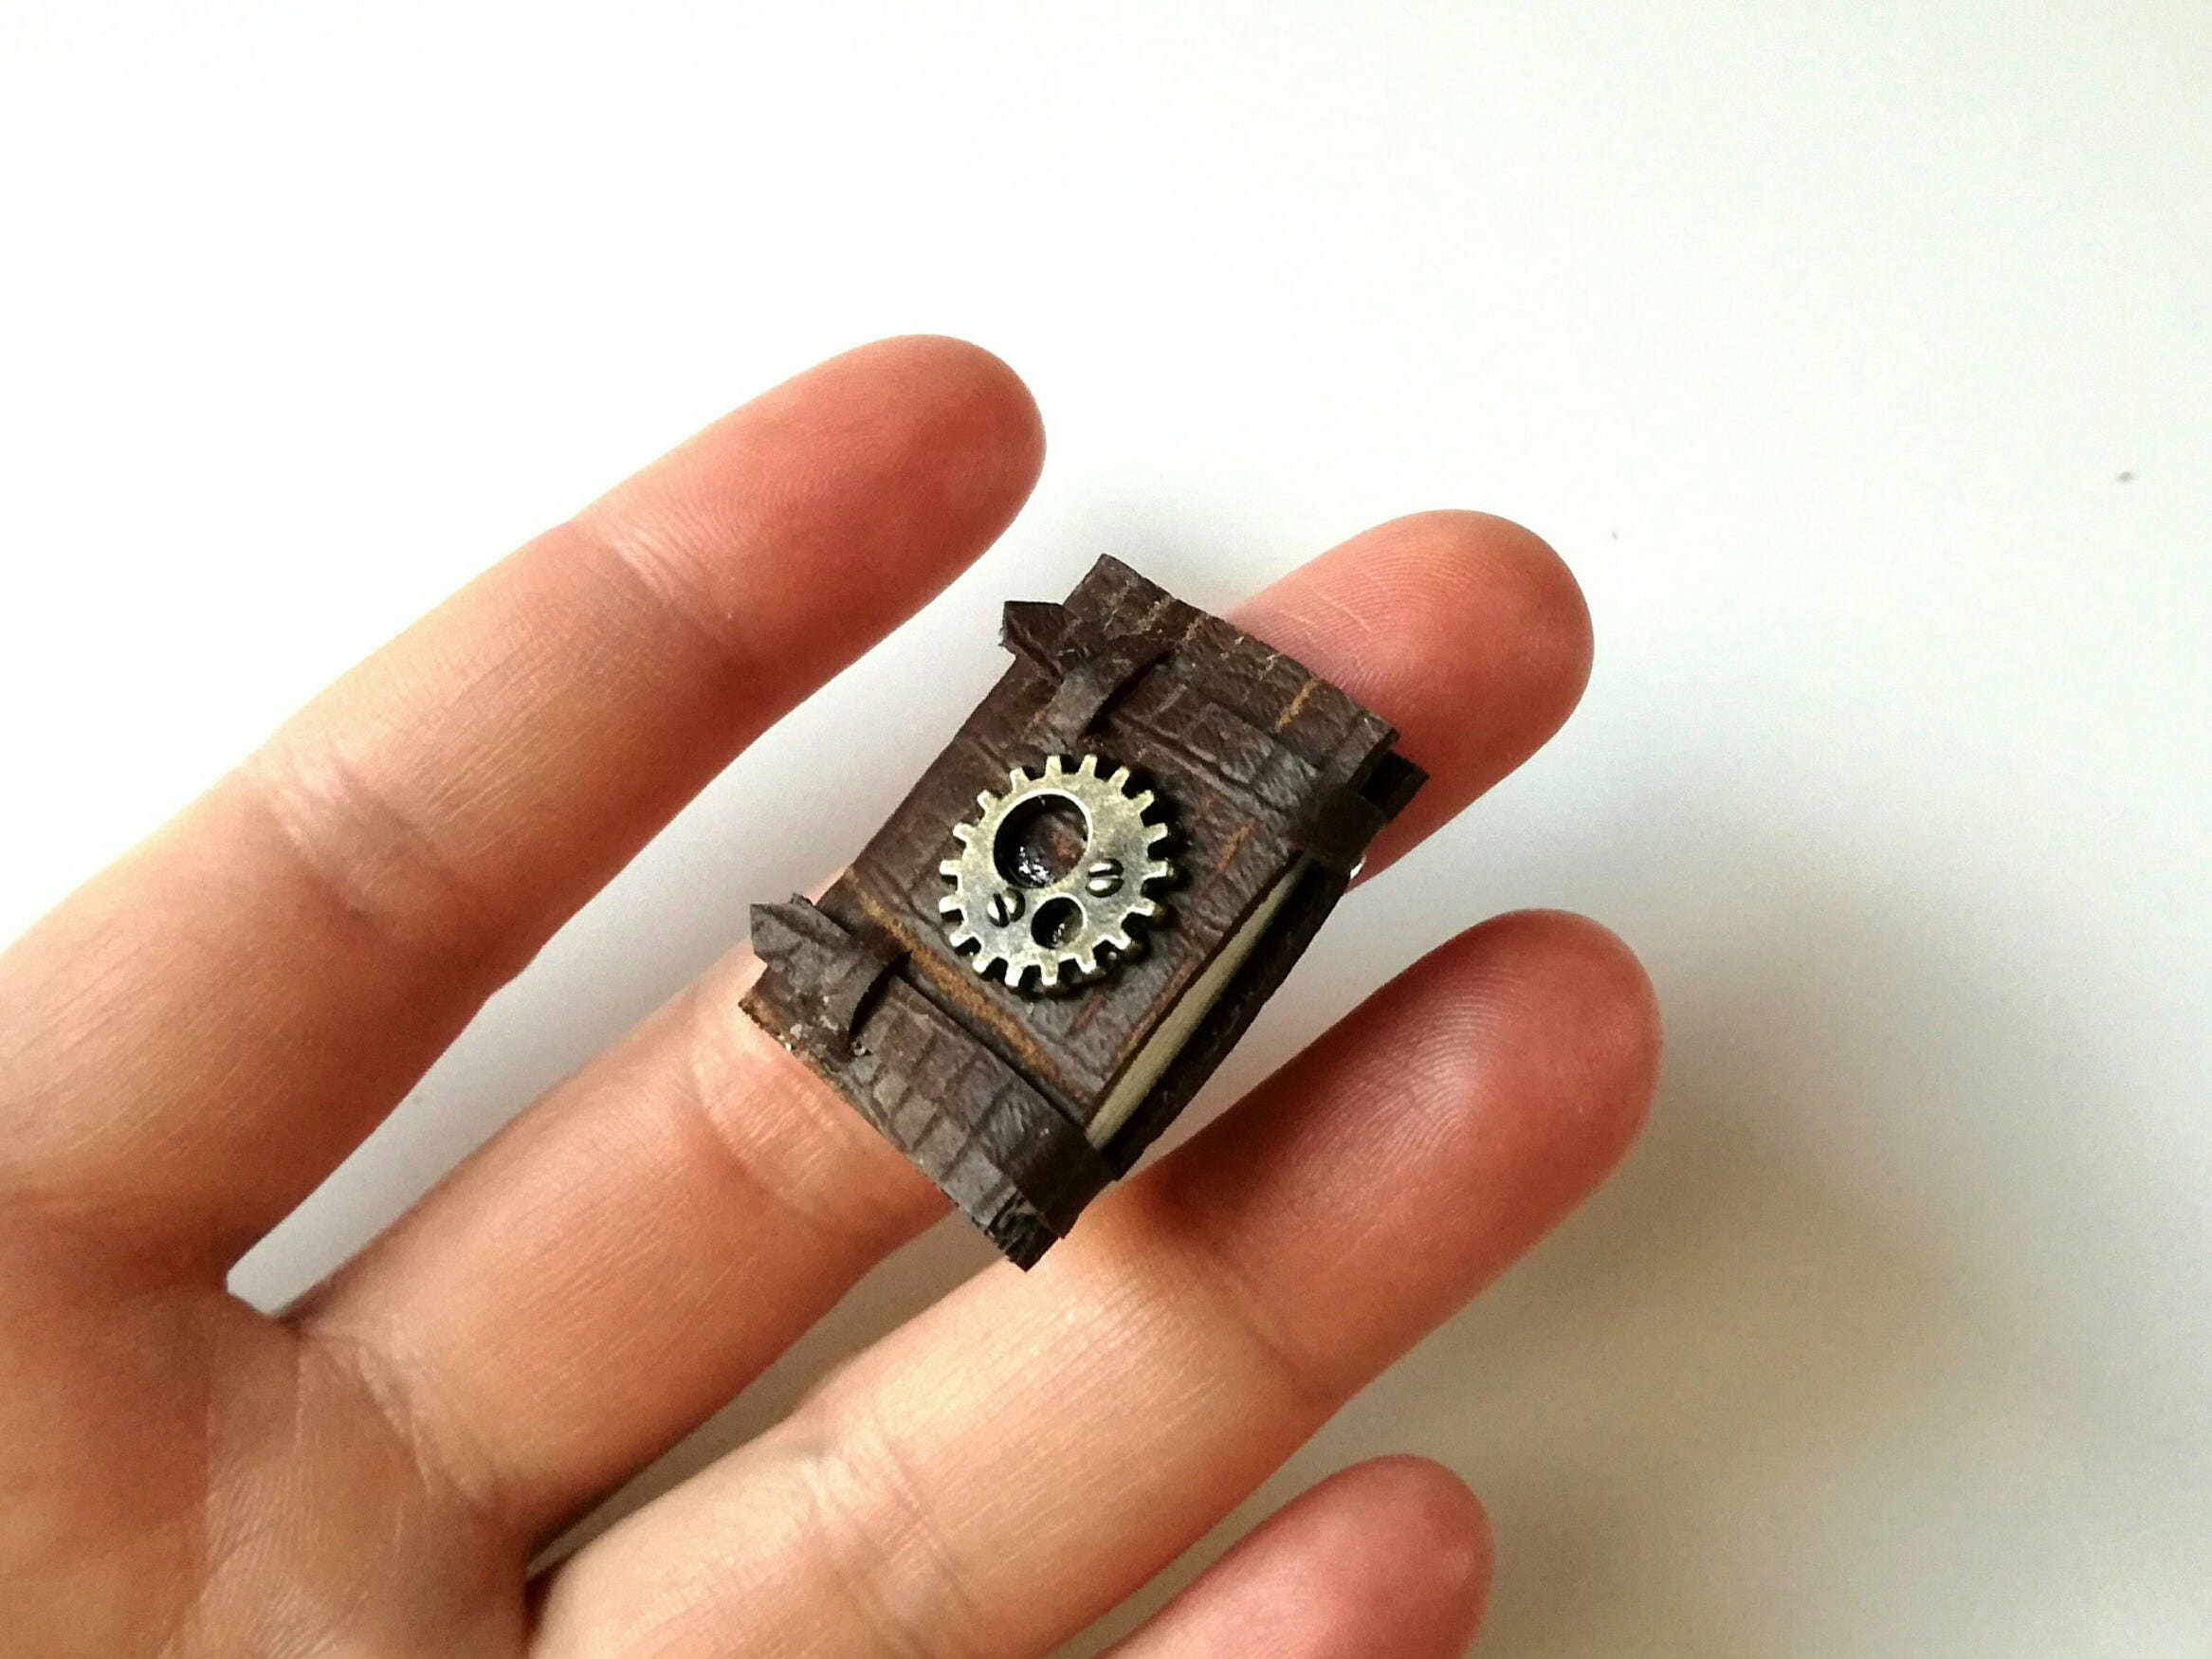 steampunk brooch playscale steampunk notebook tiny journal one sixth scale steampunk pin mini leather book steampunk favor tiny book